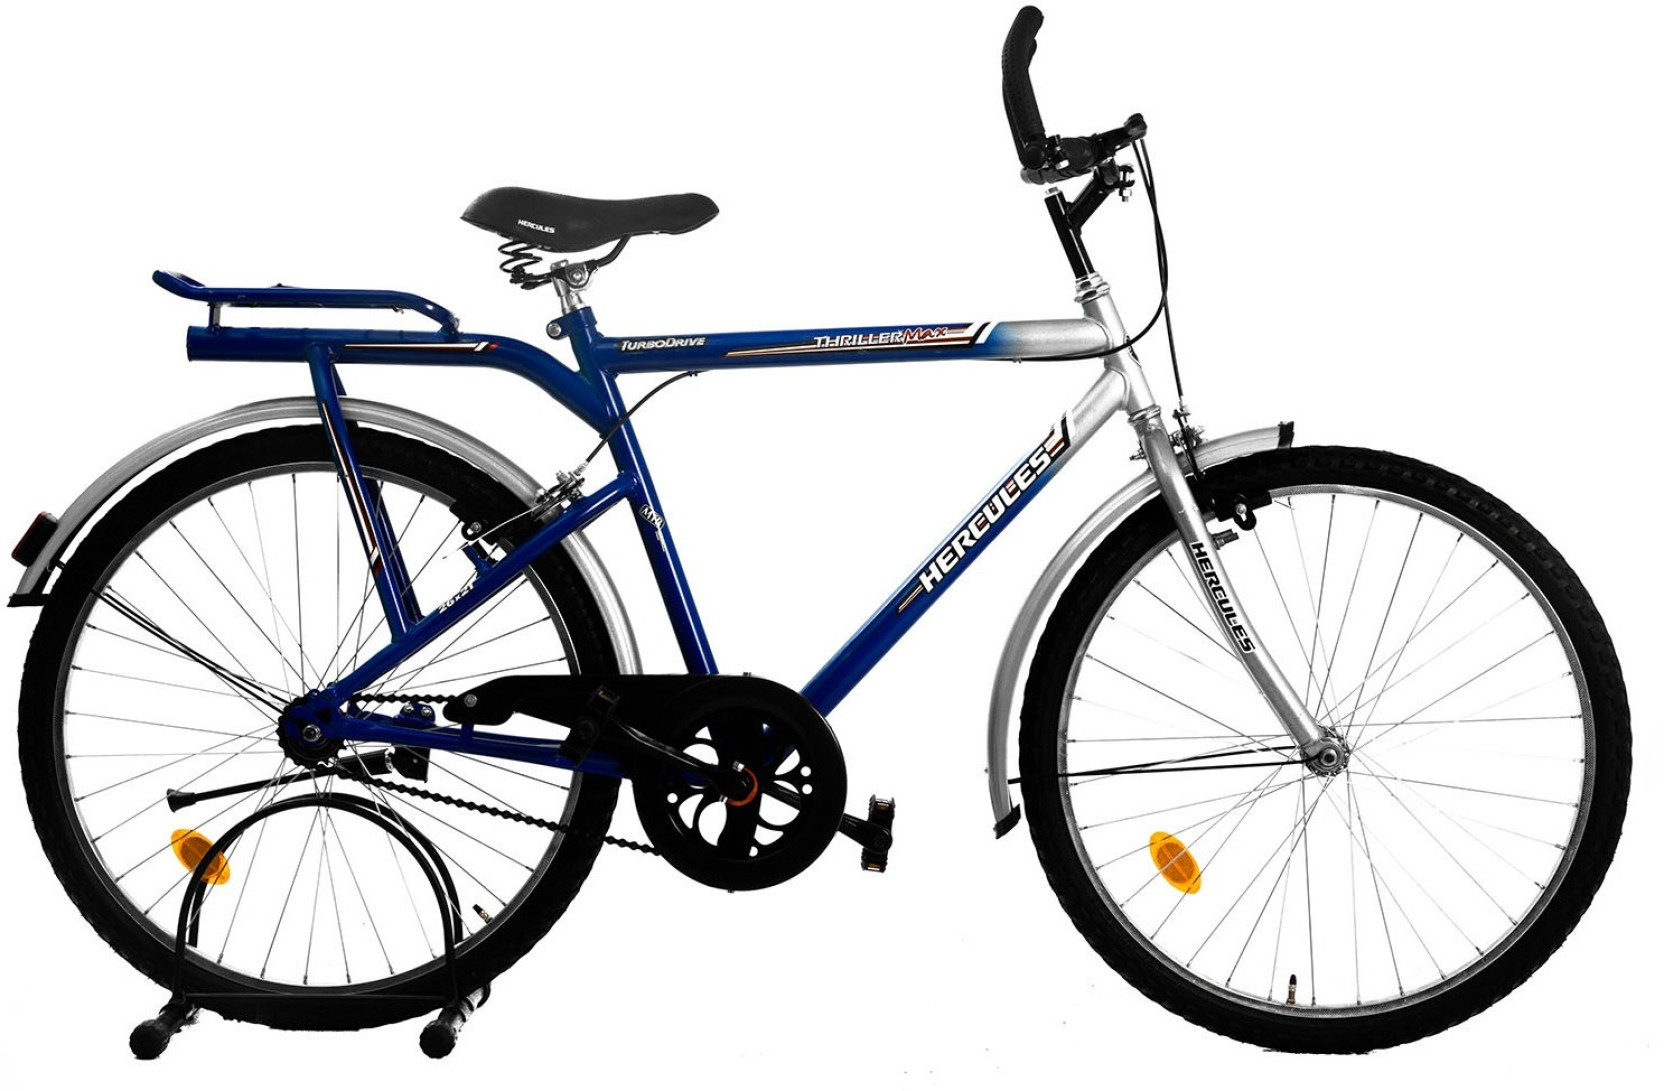 Hercules Thriller Max 26 20 T 6 Speed Mountain Cycle Price